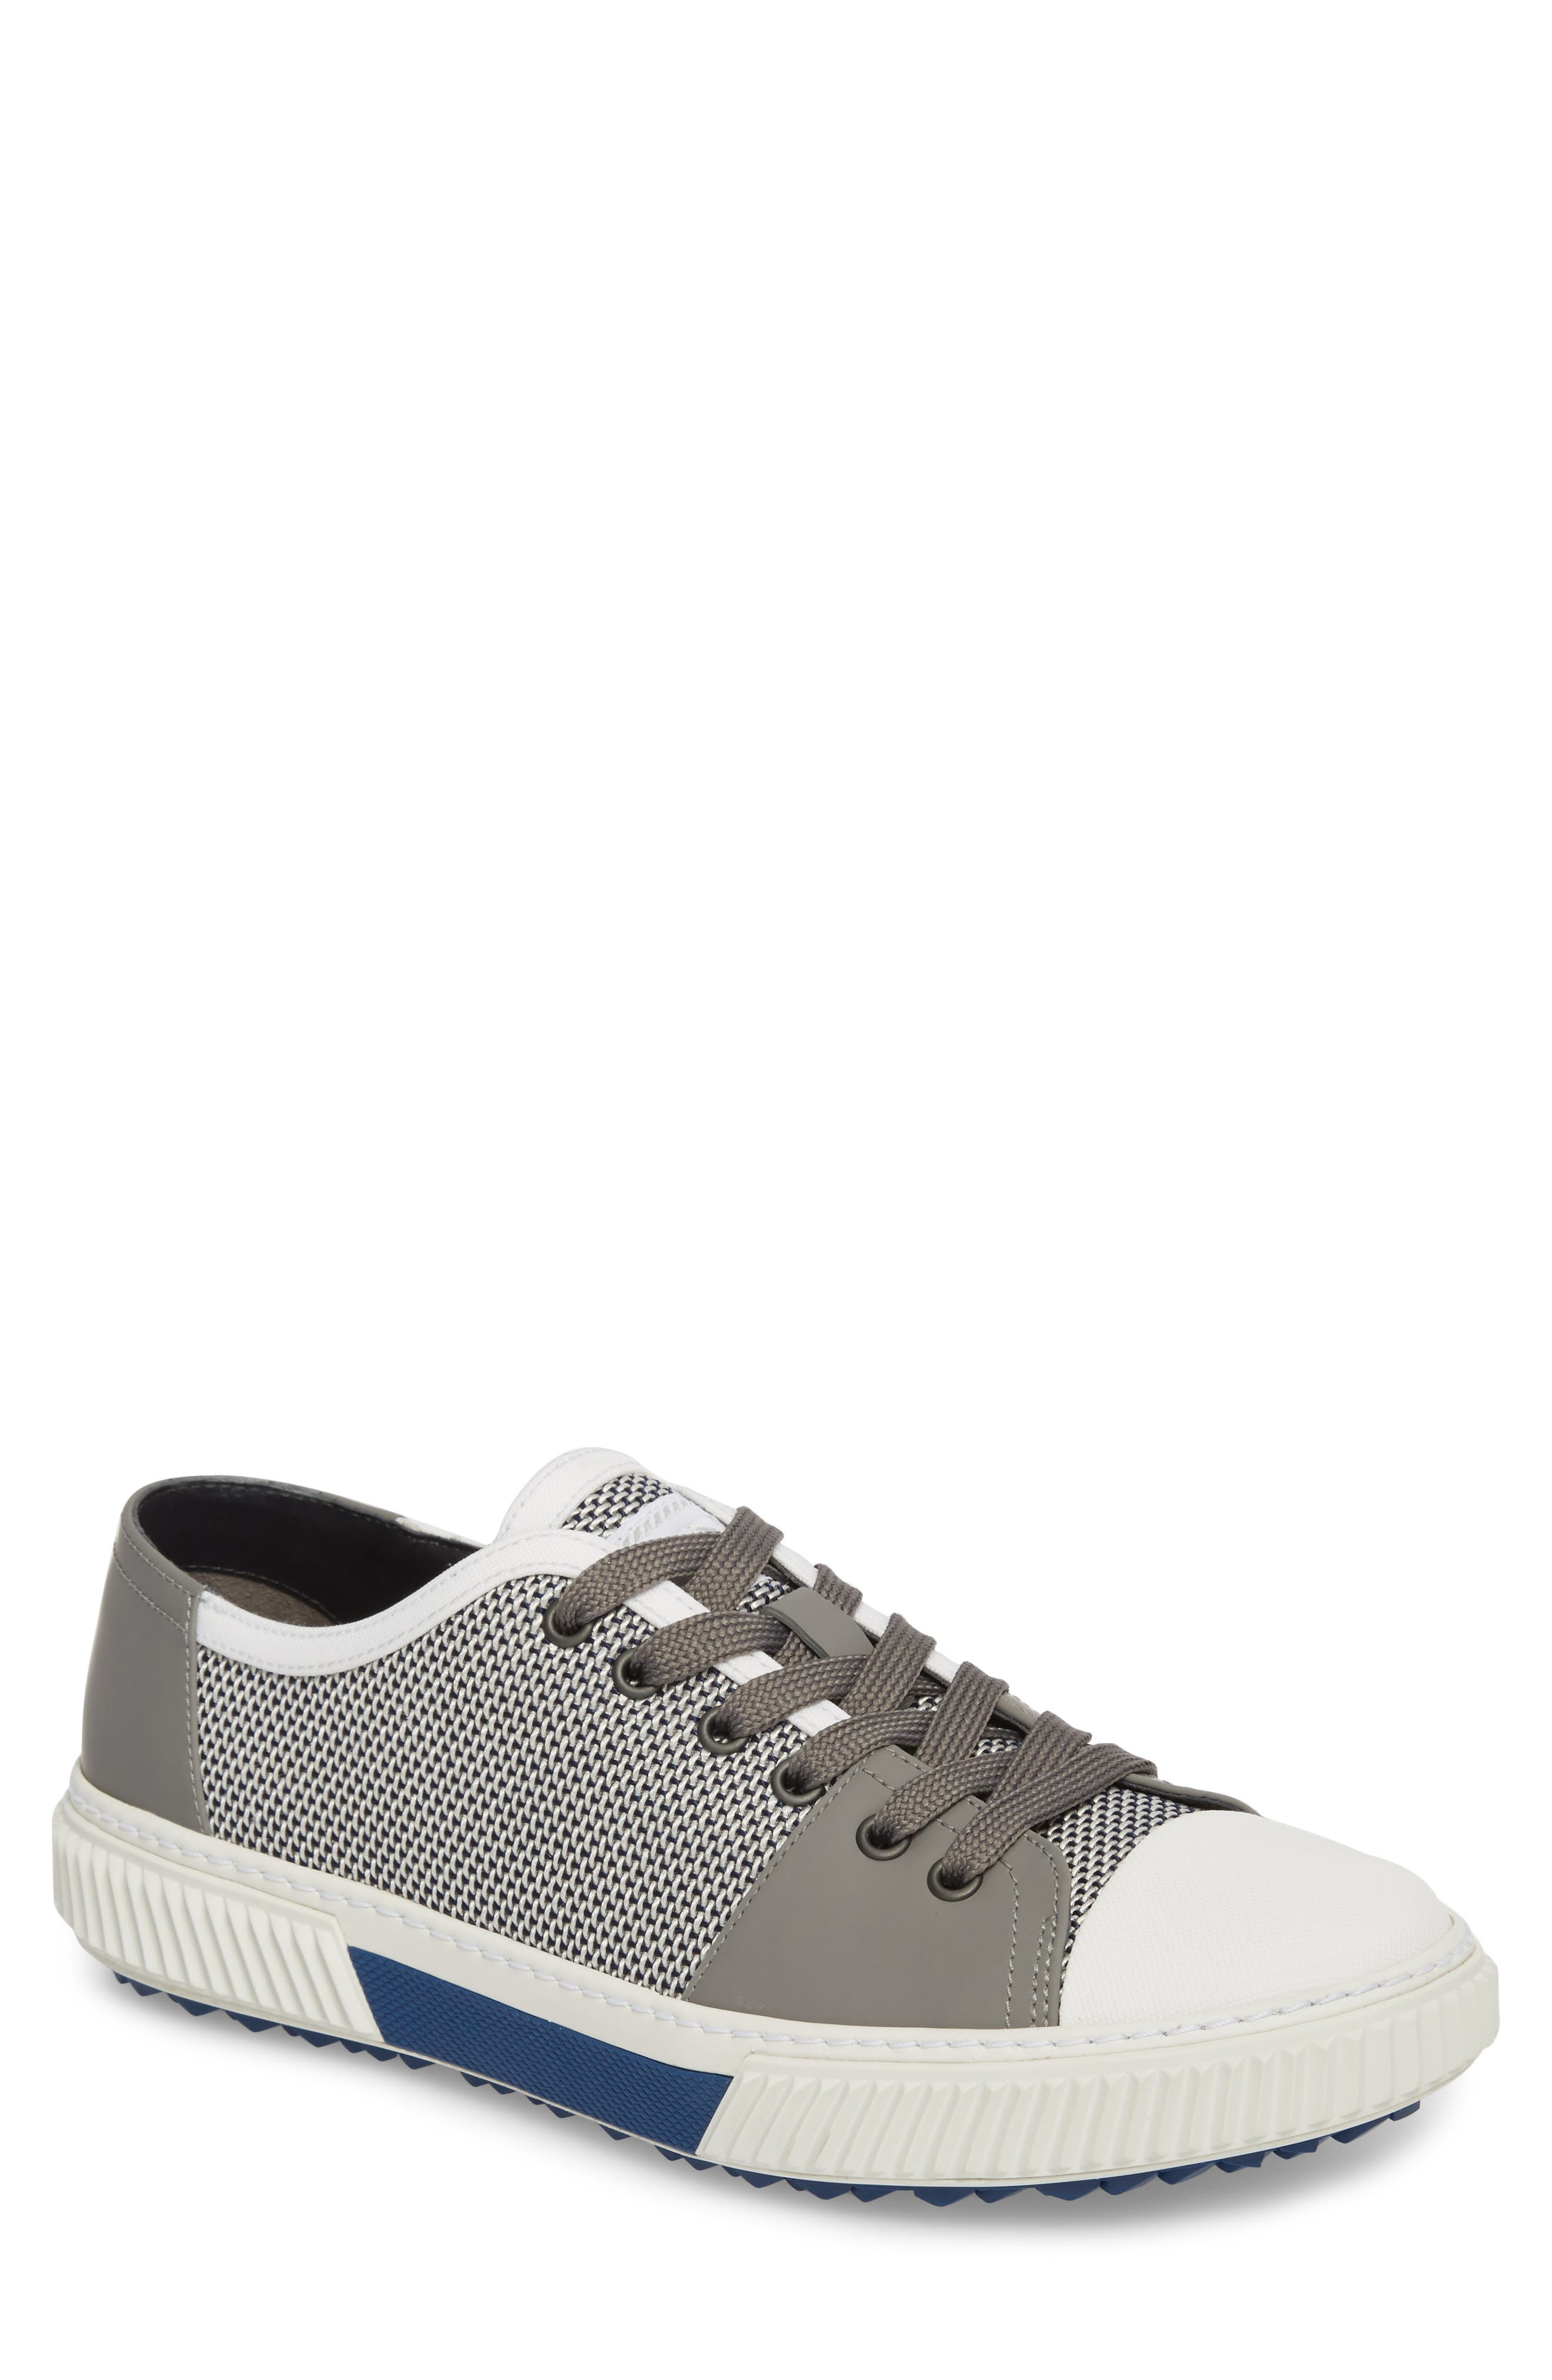 Linea Rossa Low-Top Sneaker,                             Main thumbnail 1, color,                             122